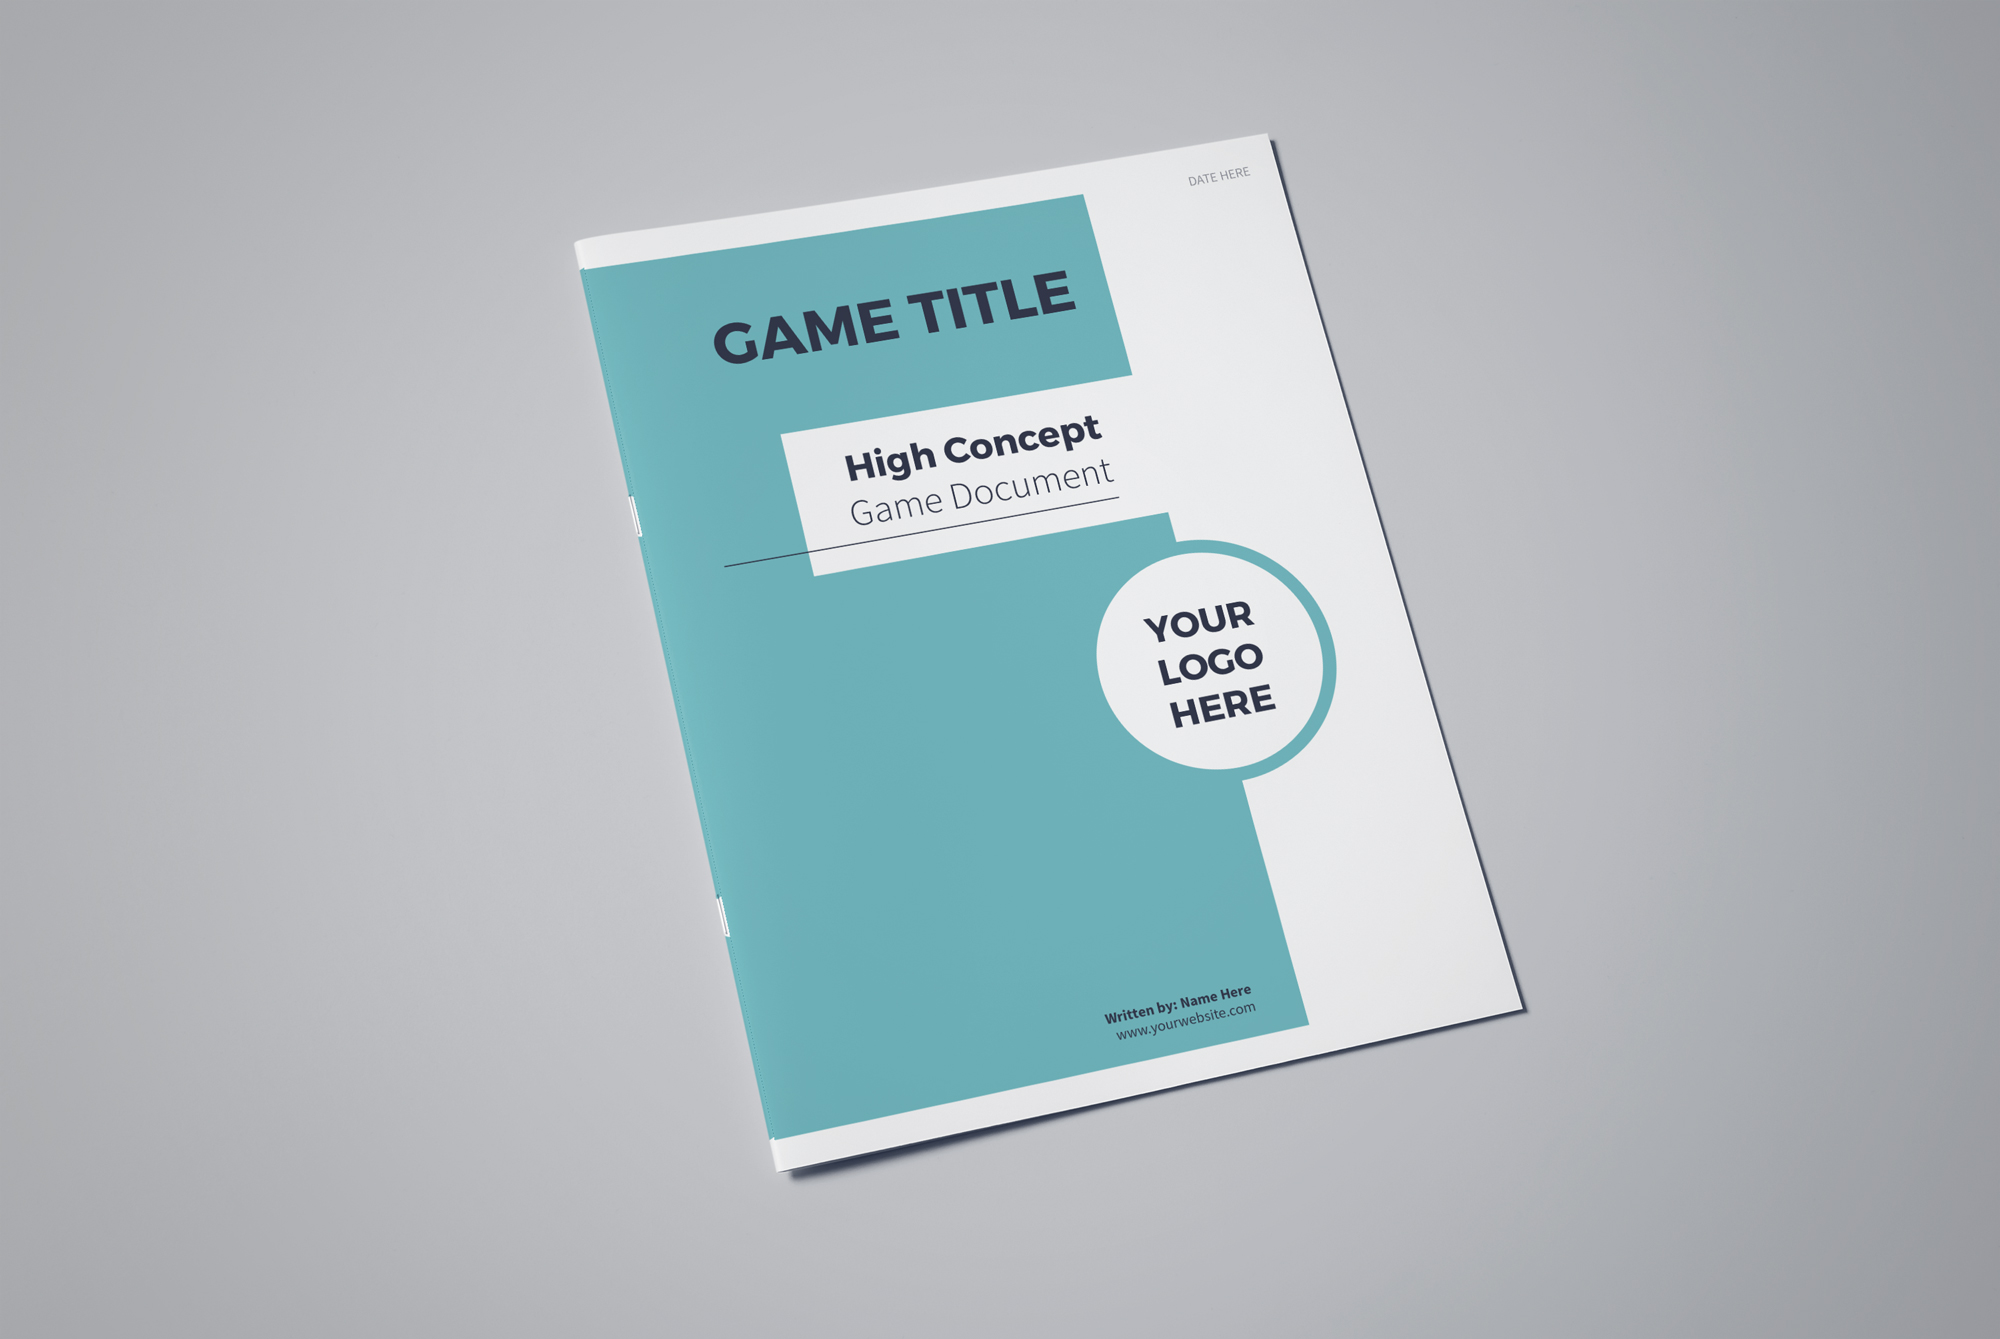 High Concept Game Document Template \u2014 Lauren Hodges Illustrator - video game template